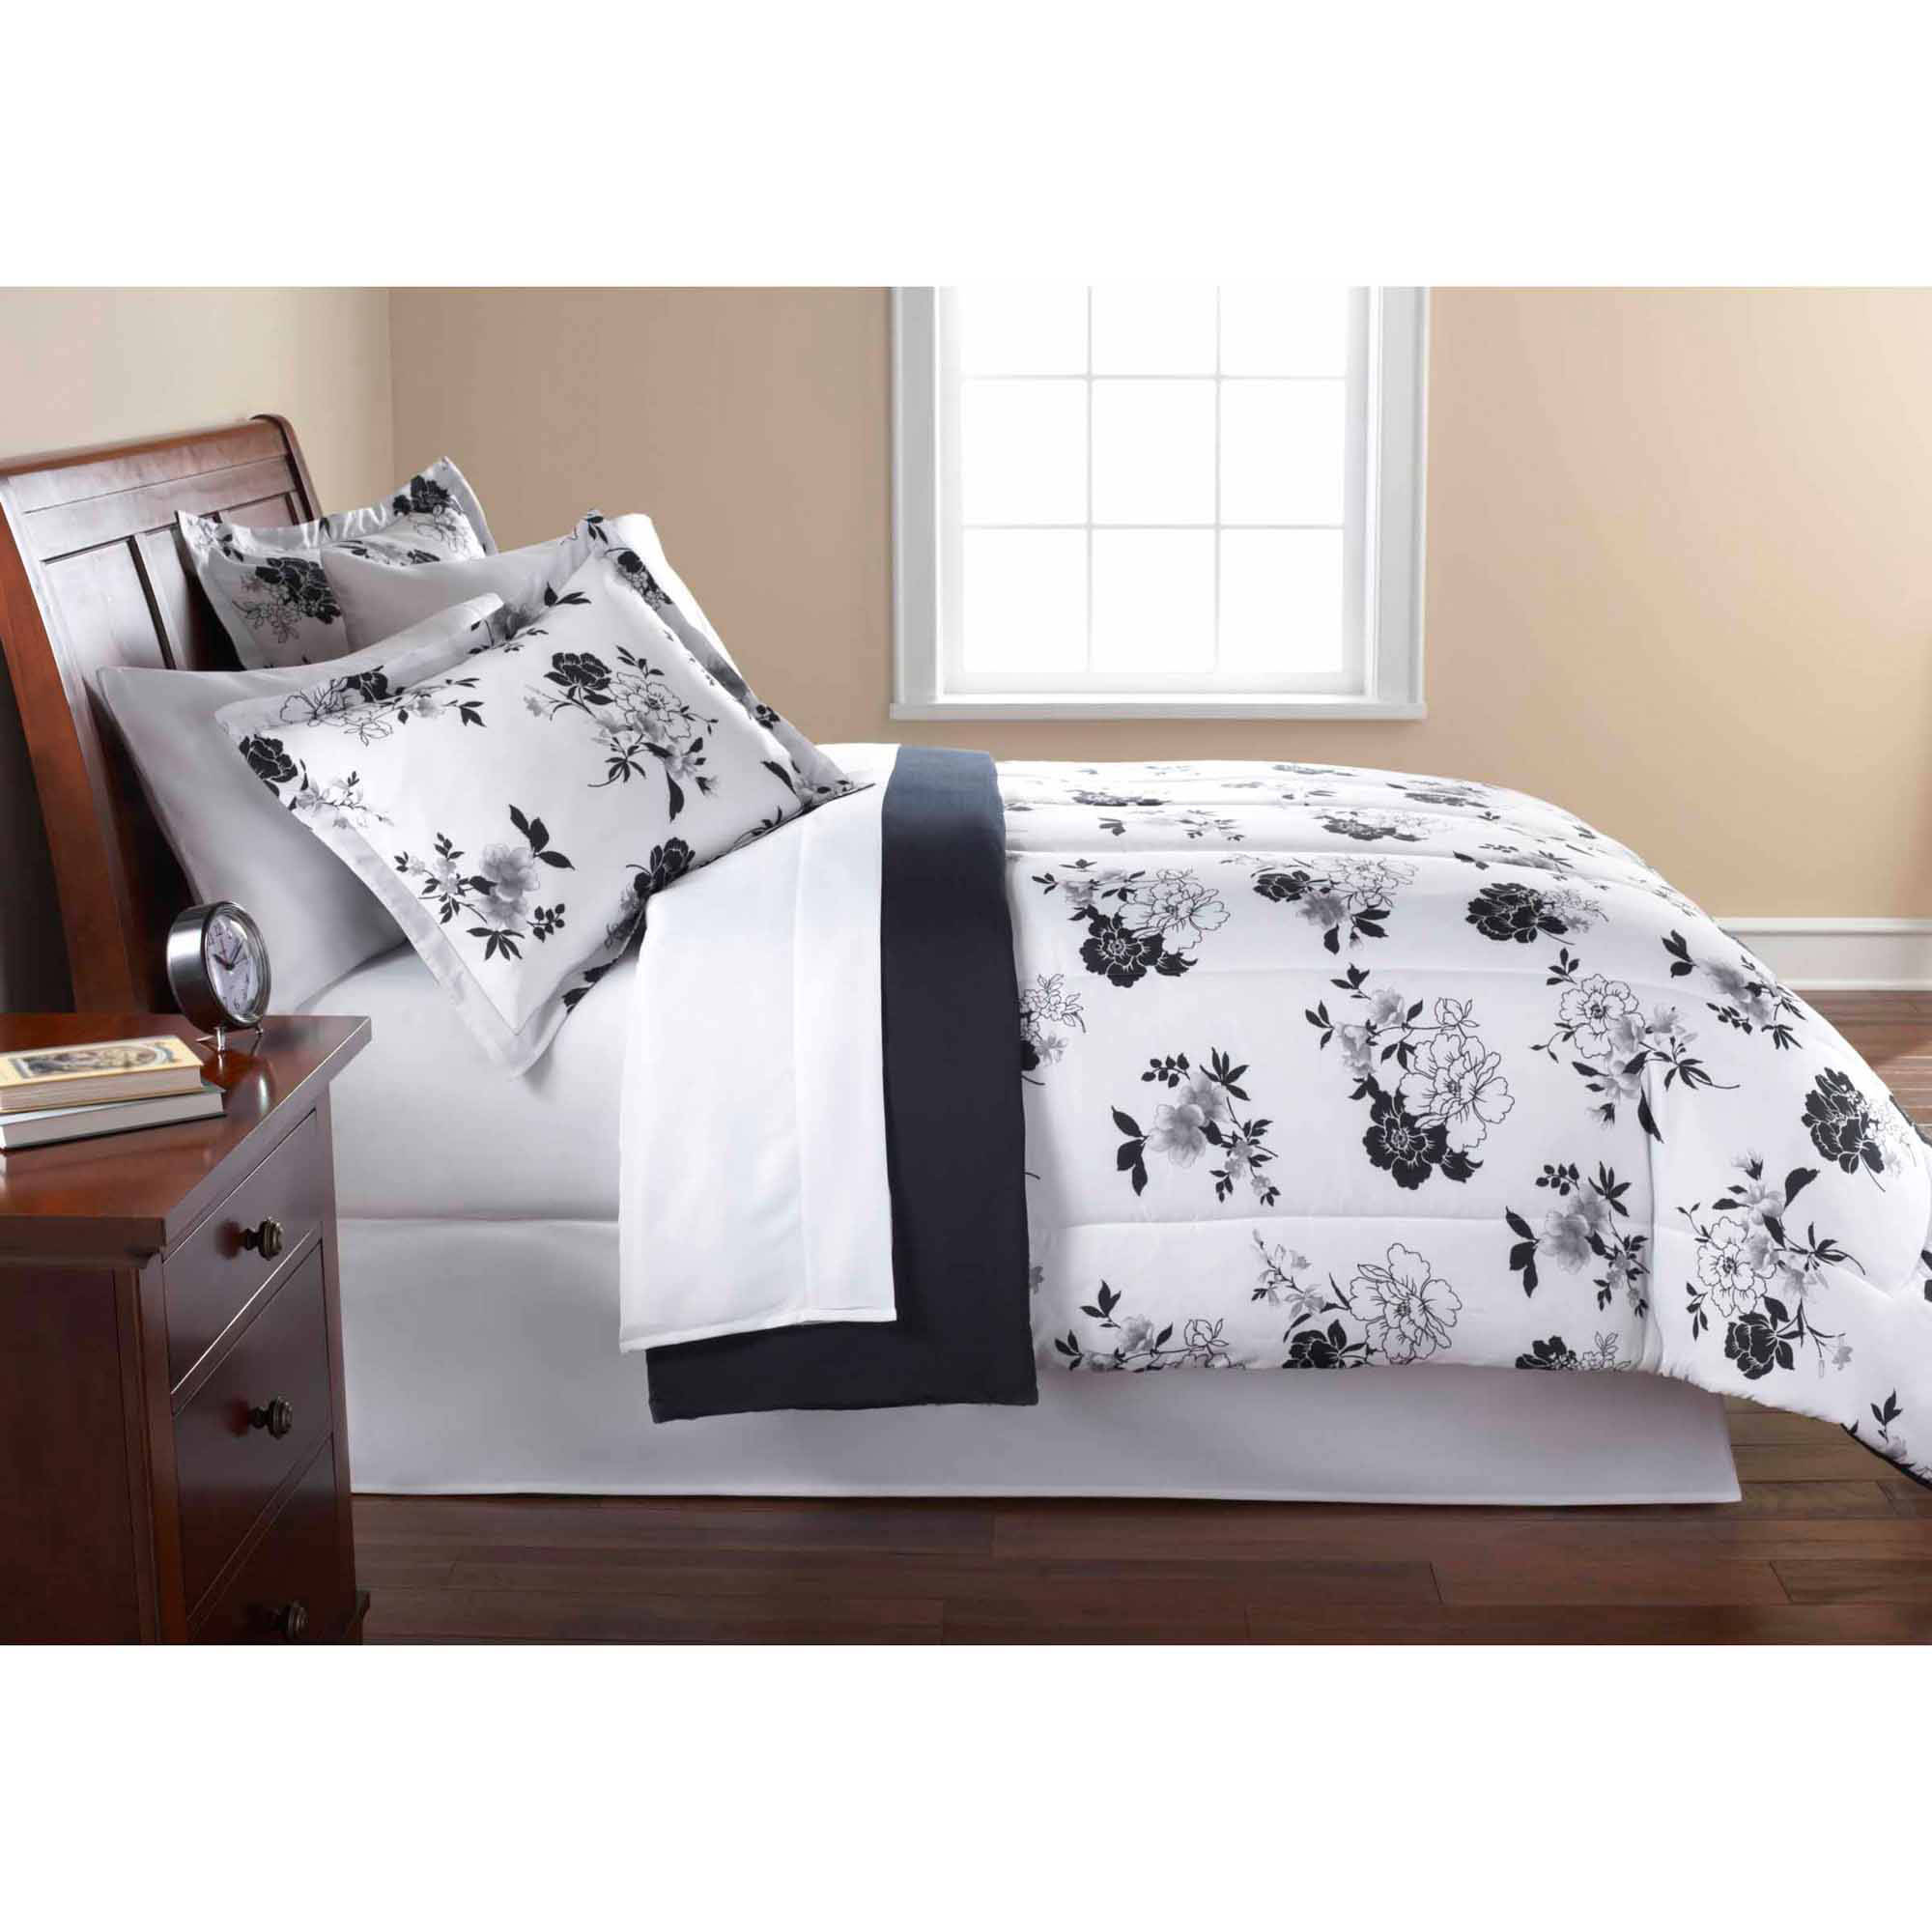 Mainstays Black and White Floral Bed-in-a-Bag Comforter Set